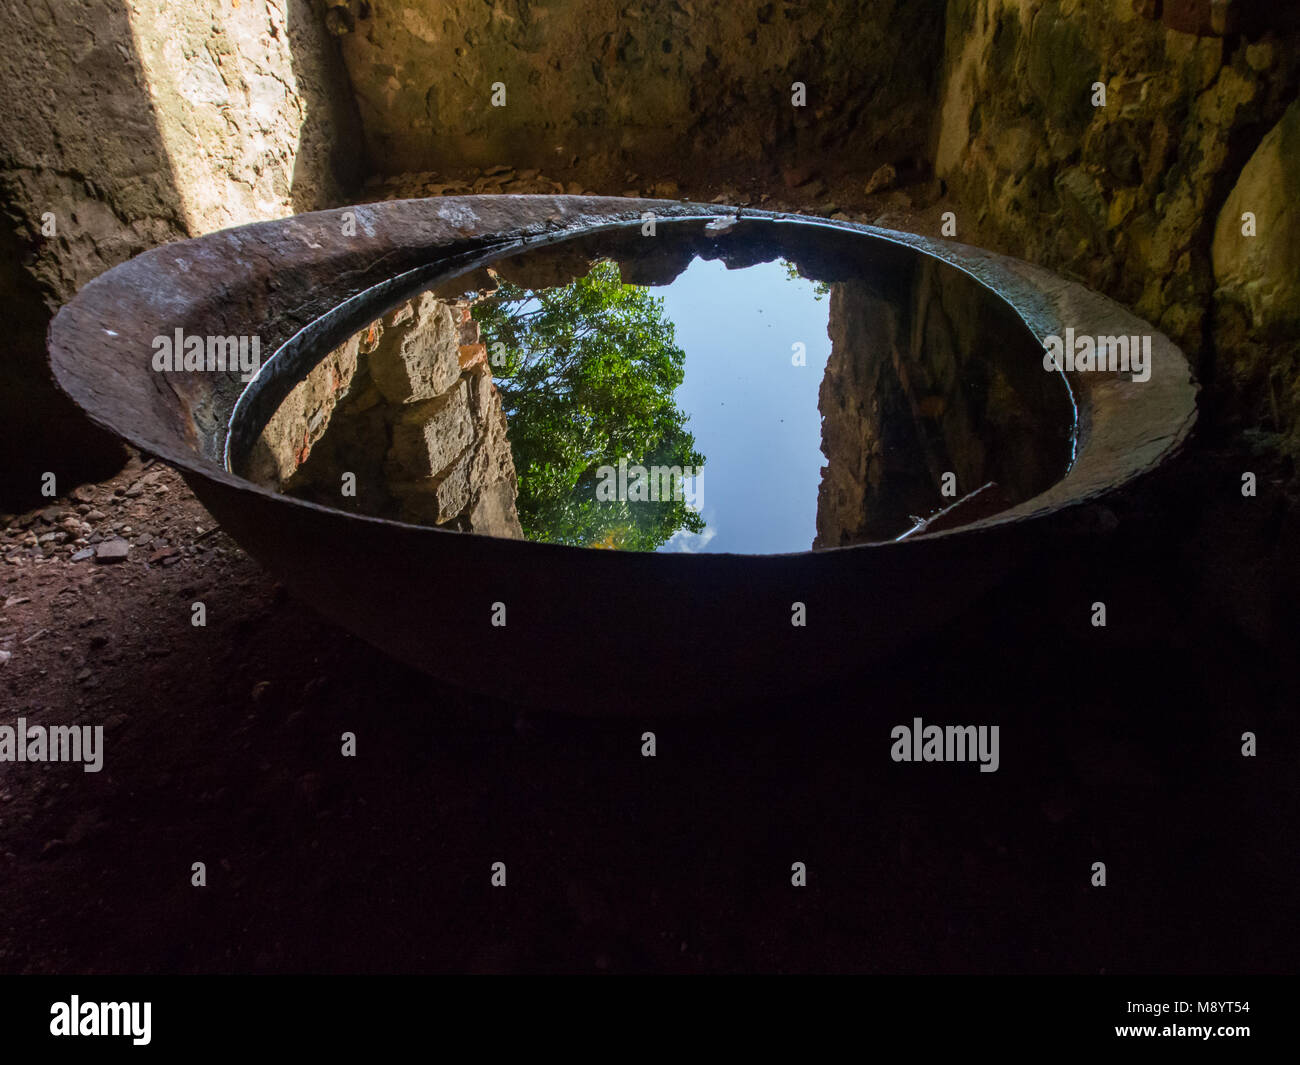 Rusted Basin Full of Water Reflecting Trees and Sky, Reef Bay Ruins, St. John - Stock Image